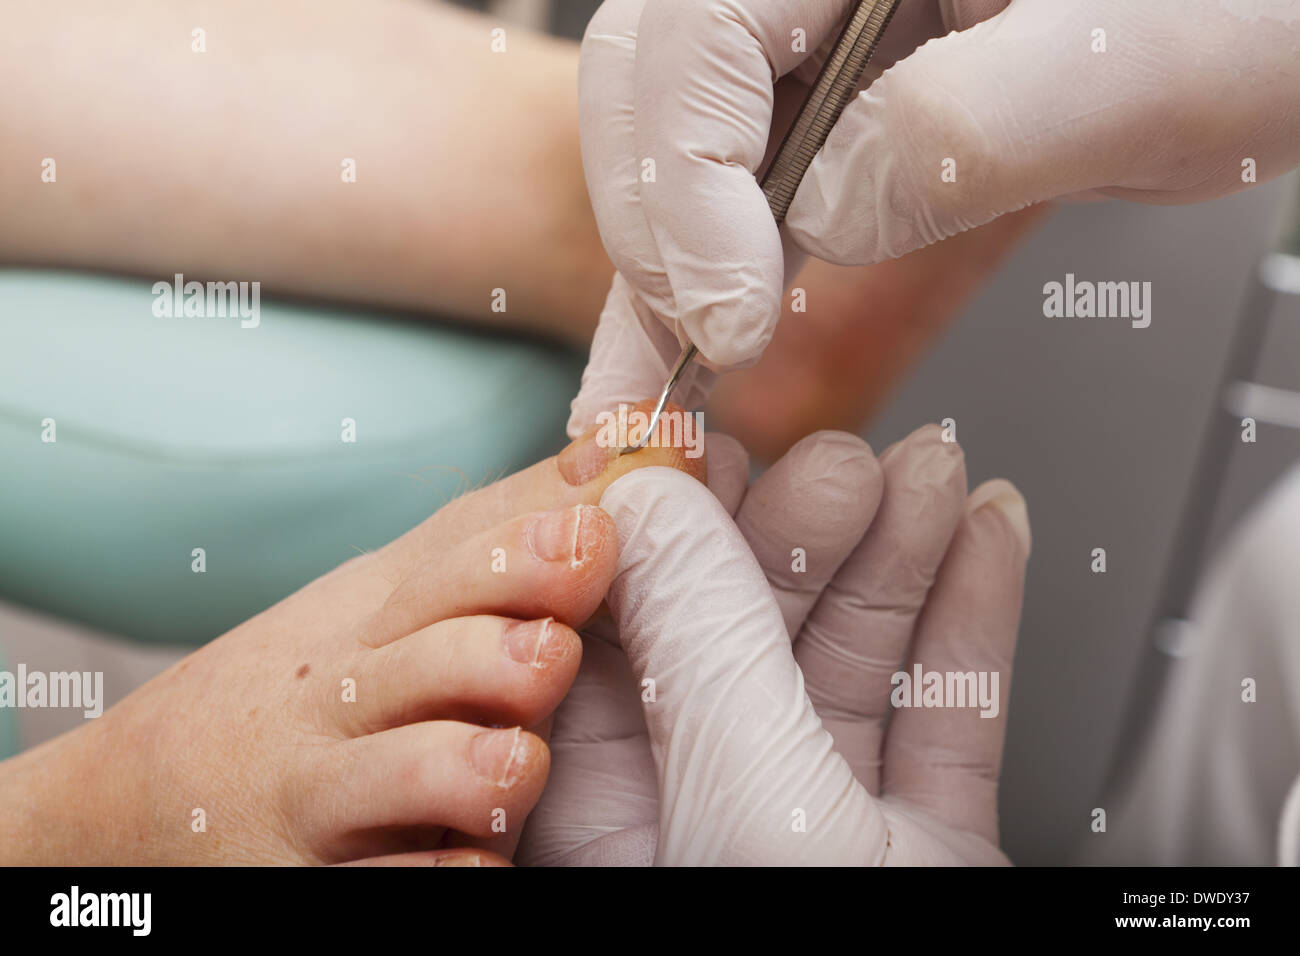 A podiatrist edited a toenail with a special toenail Lifter - Stock Image